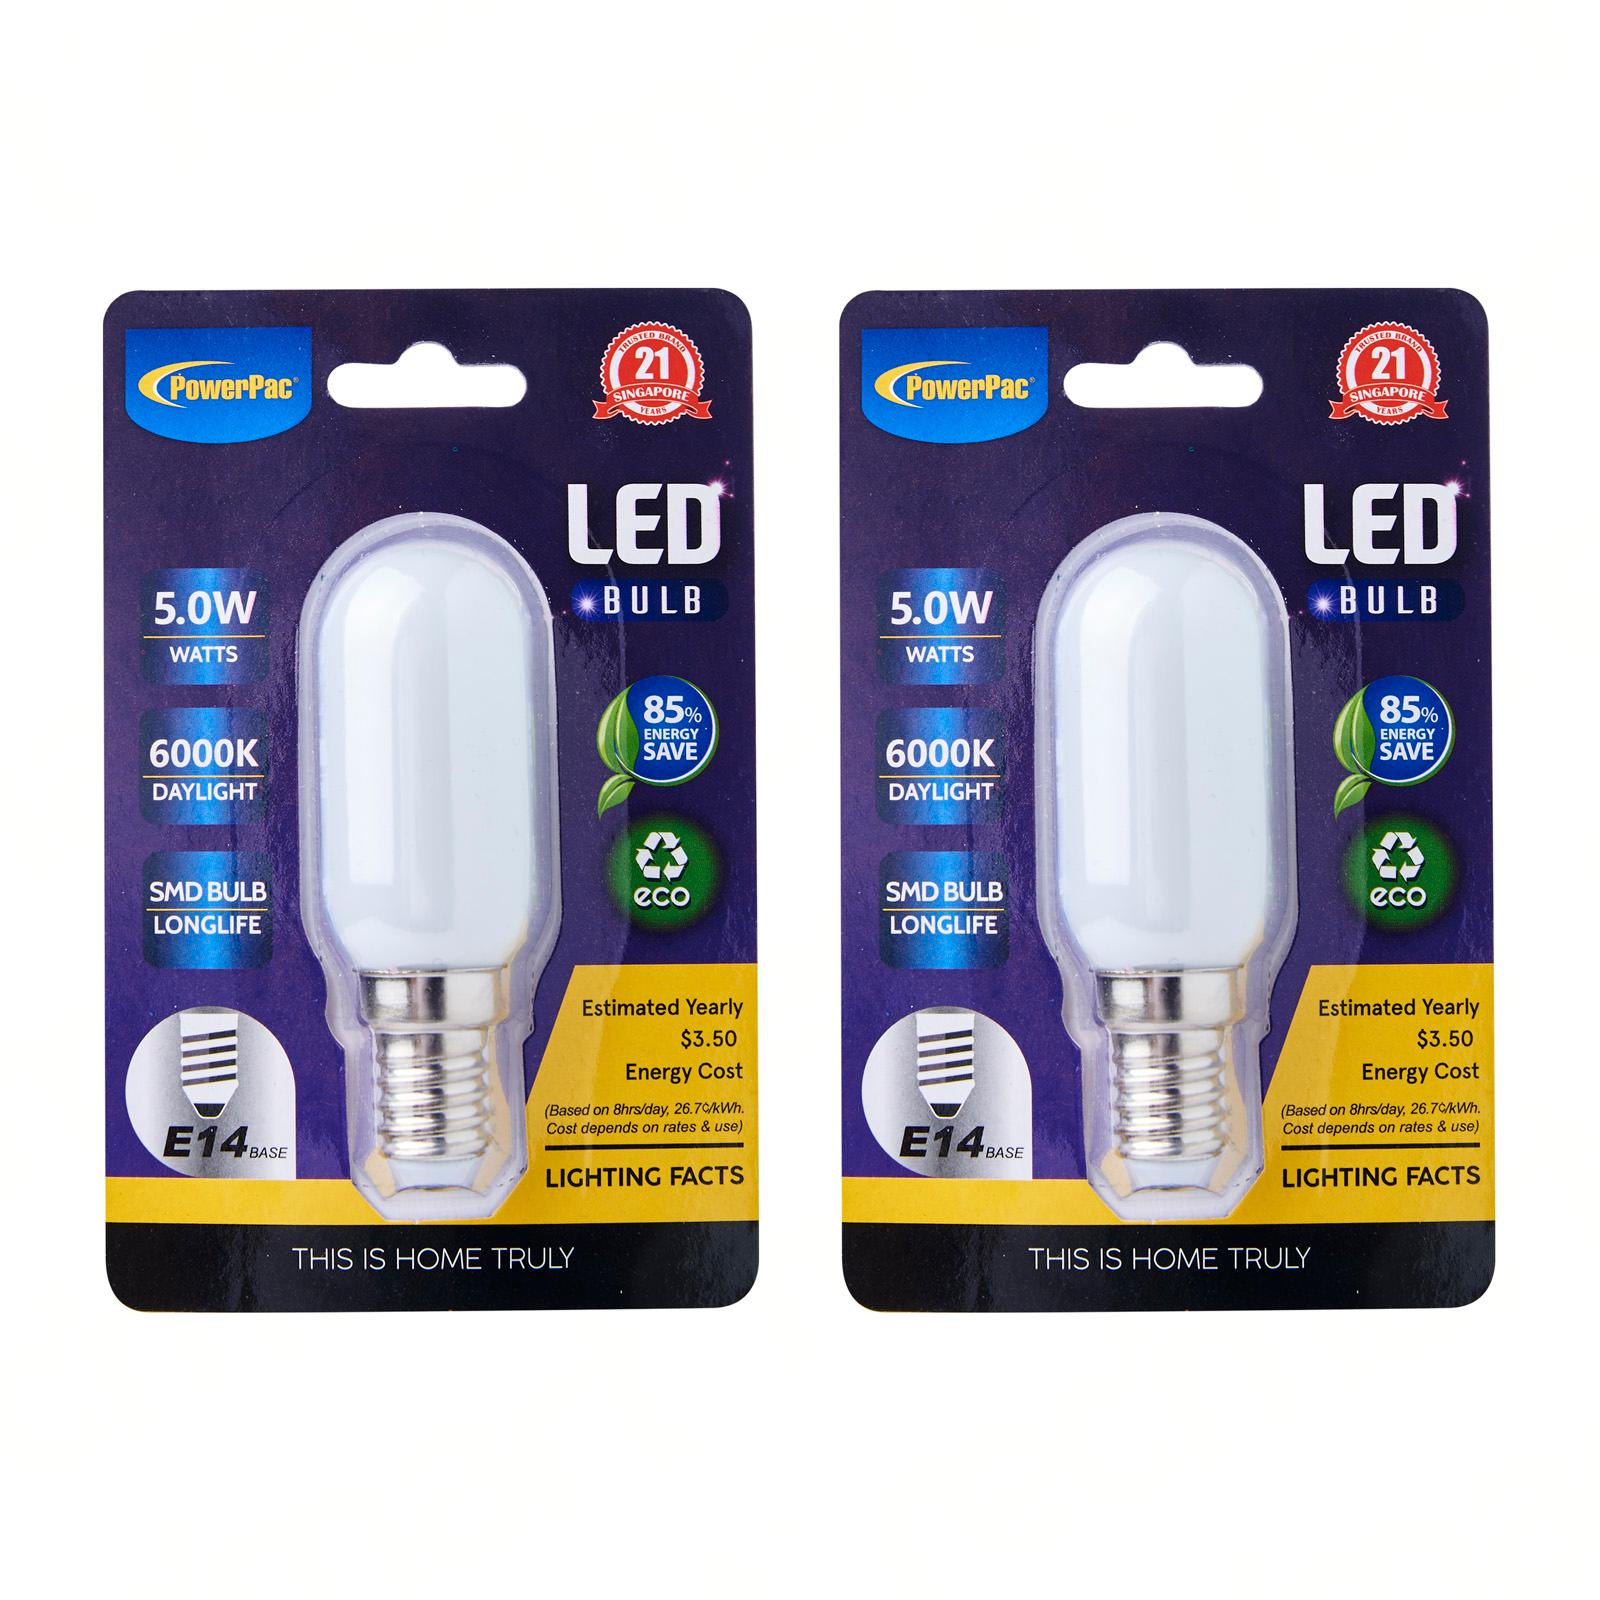 PowerPac 2 Pieces 5W E14 LED Bulb Day Light - PP6226